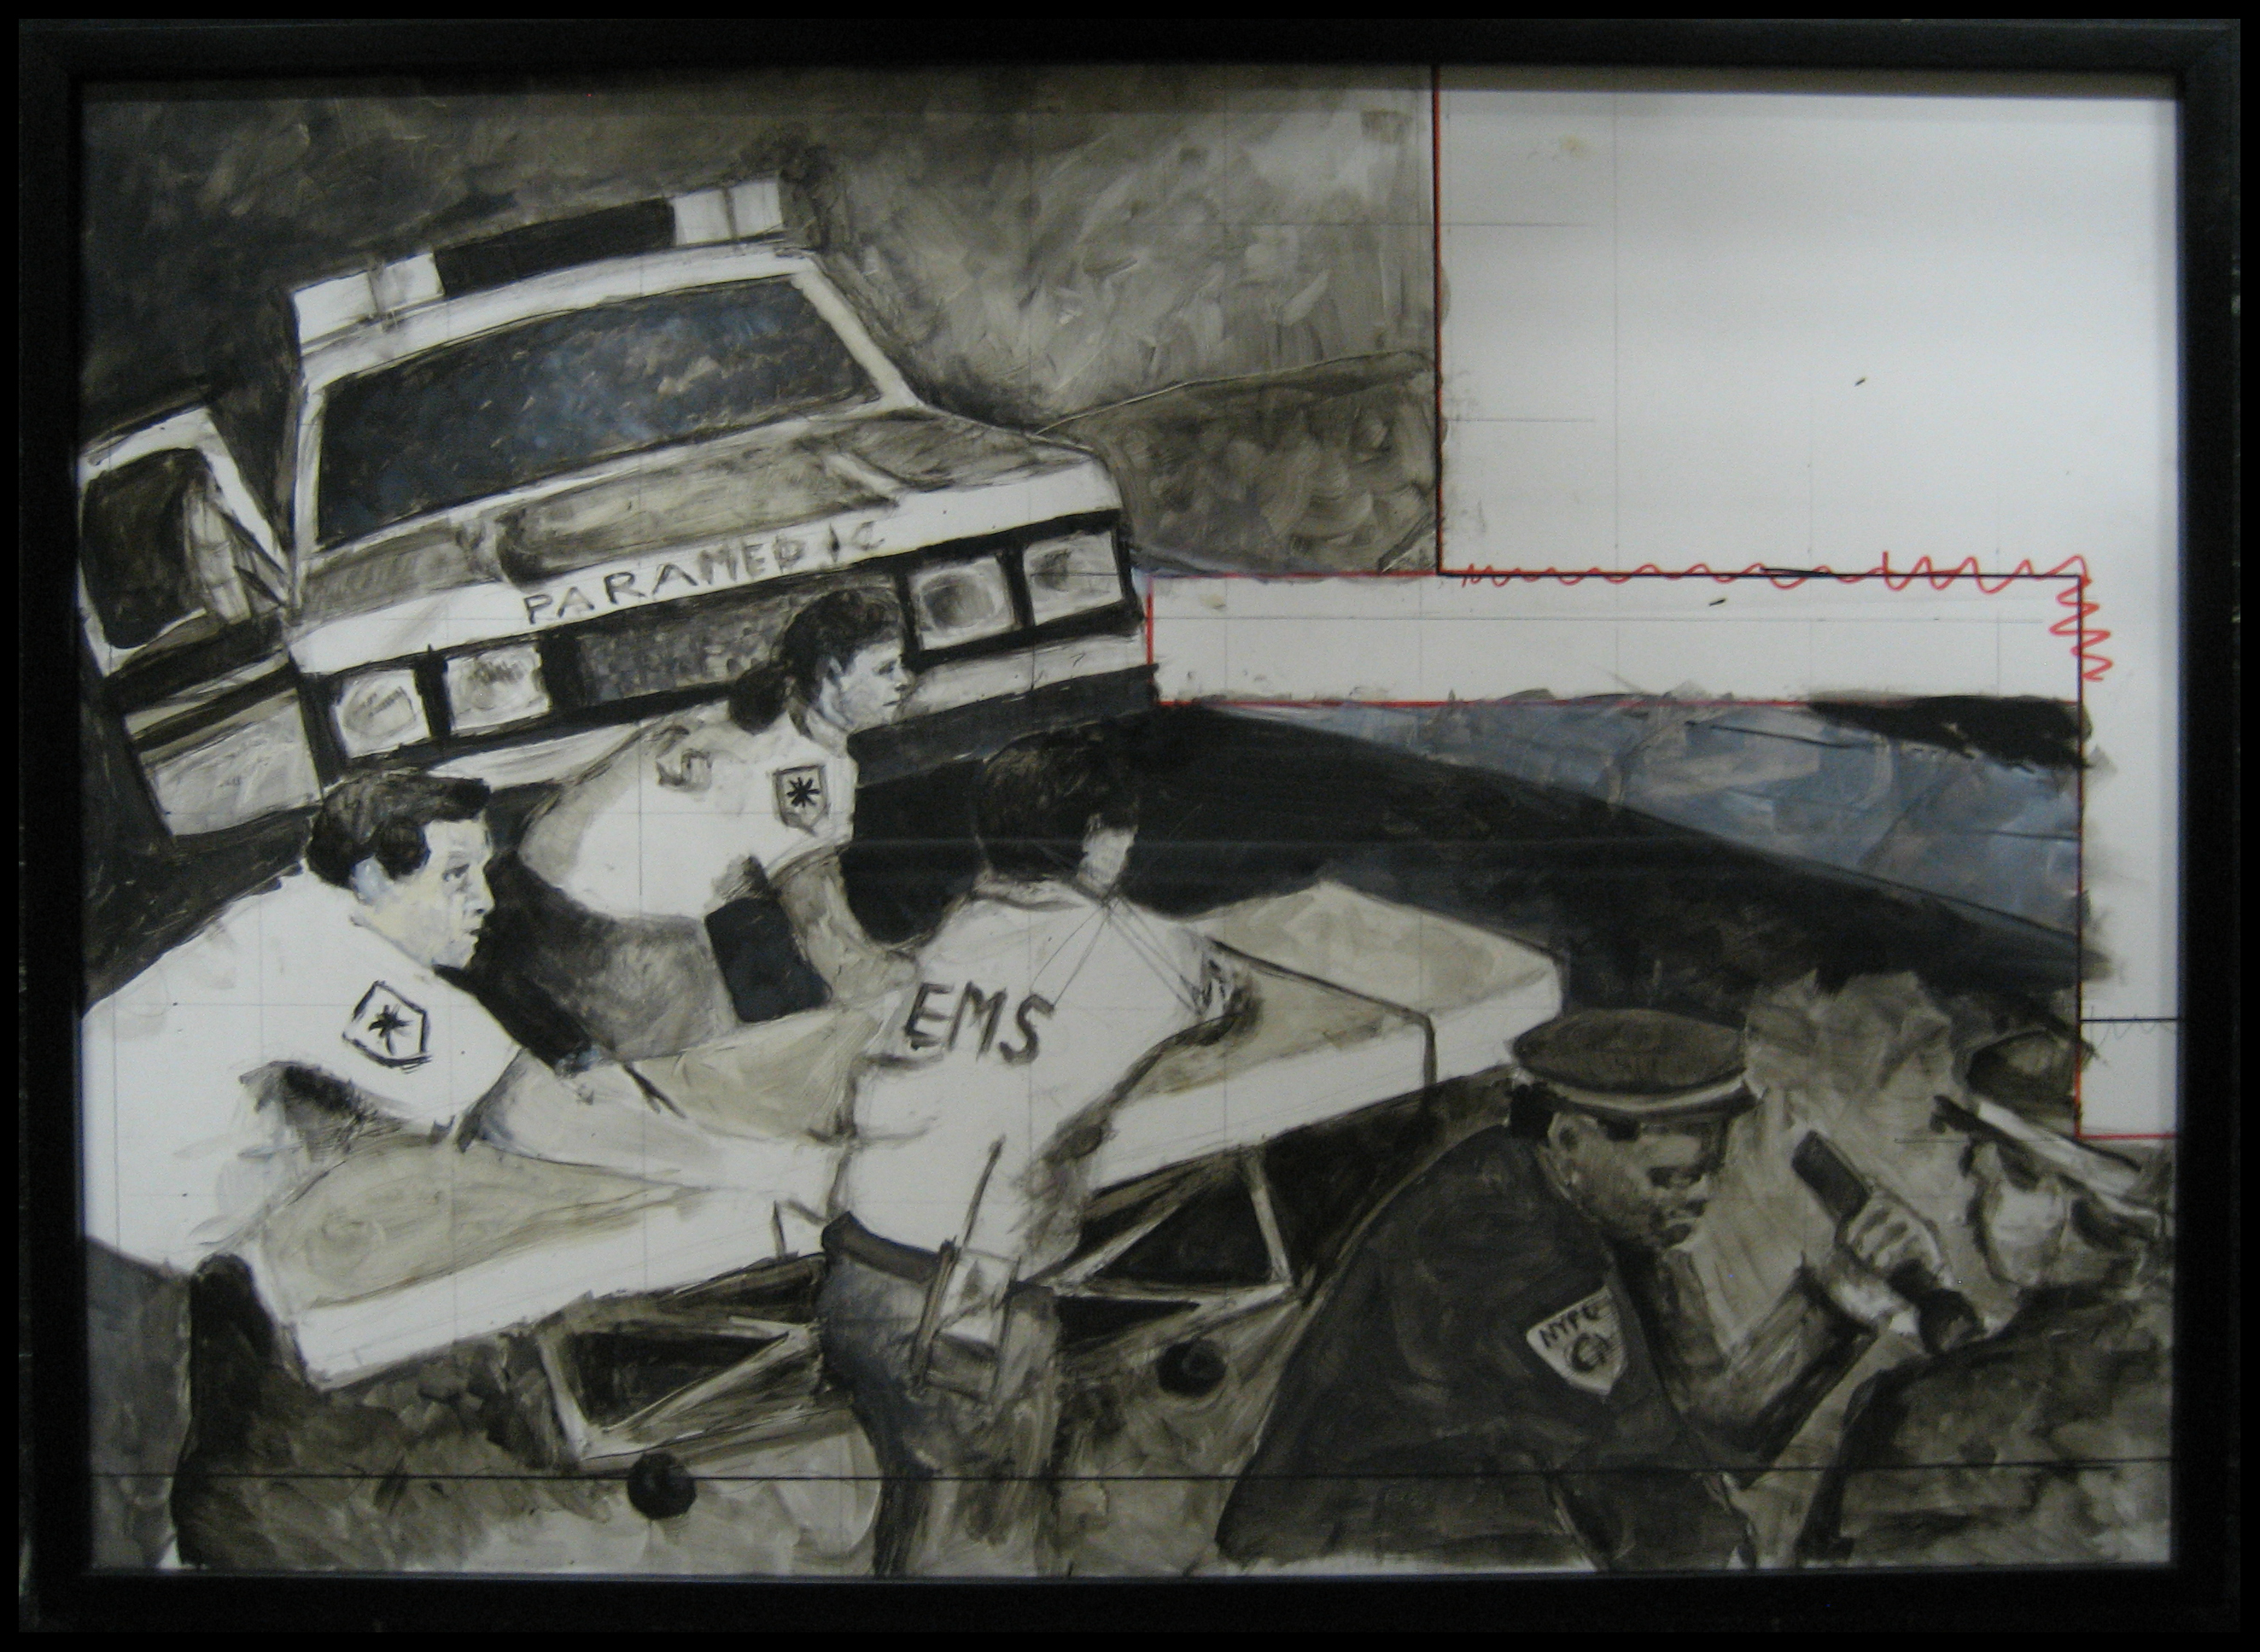 Cheng, Amy - EMS NYPD Maquette Study - 2003 - acrylic on board - 39 x 30 in - 35161